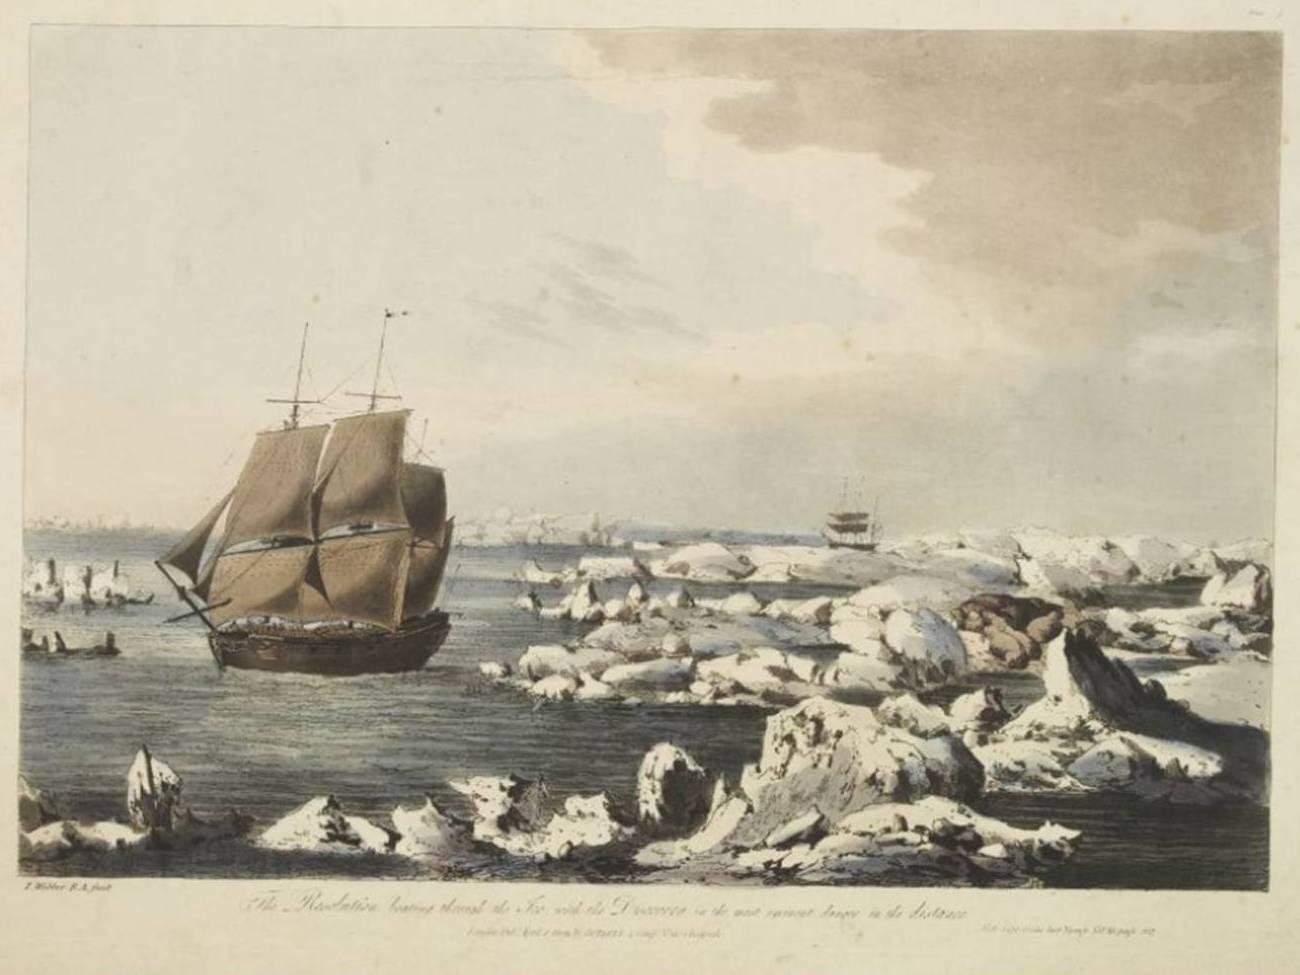 Captain Cook's Notes Describe Now-Vanishing Arctic Ice Wall